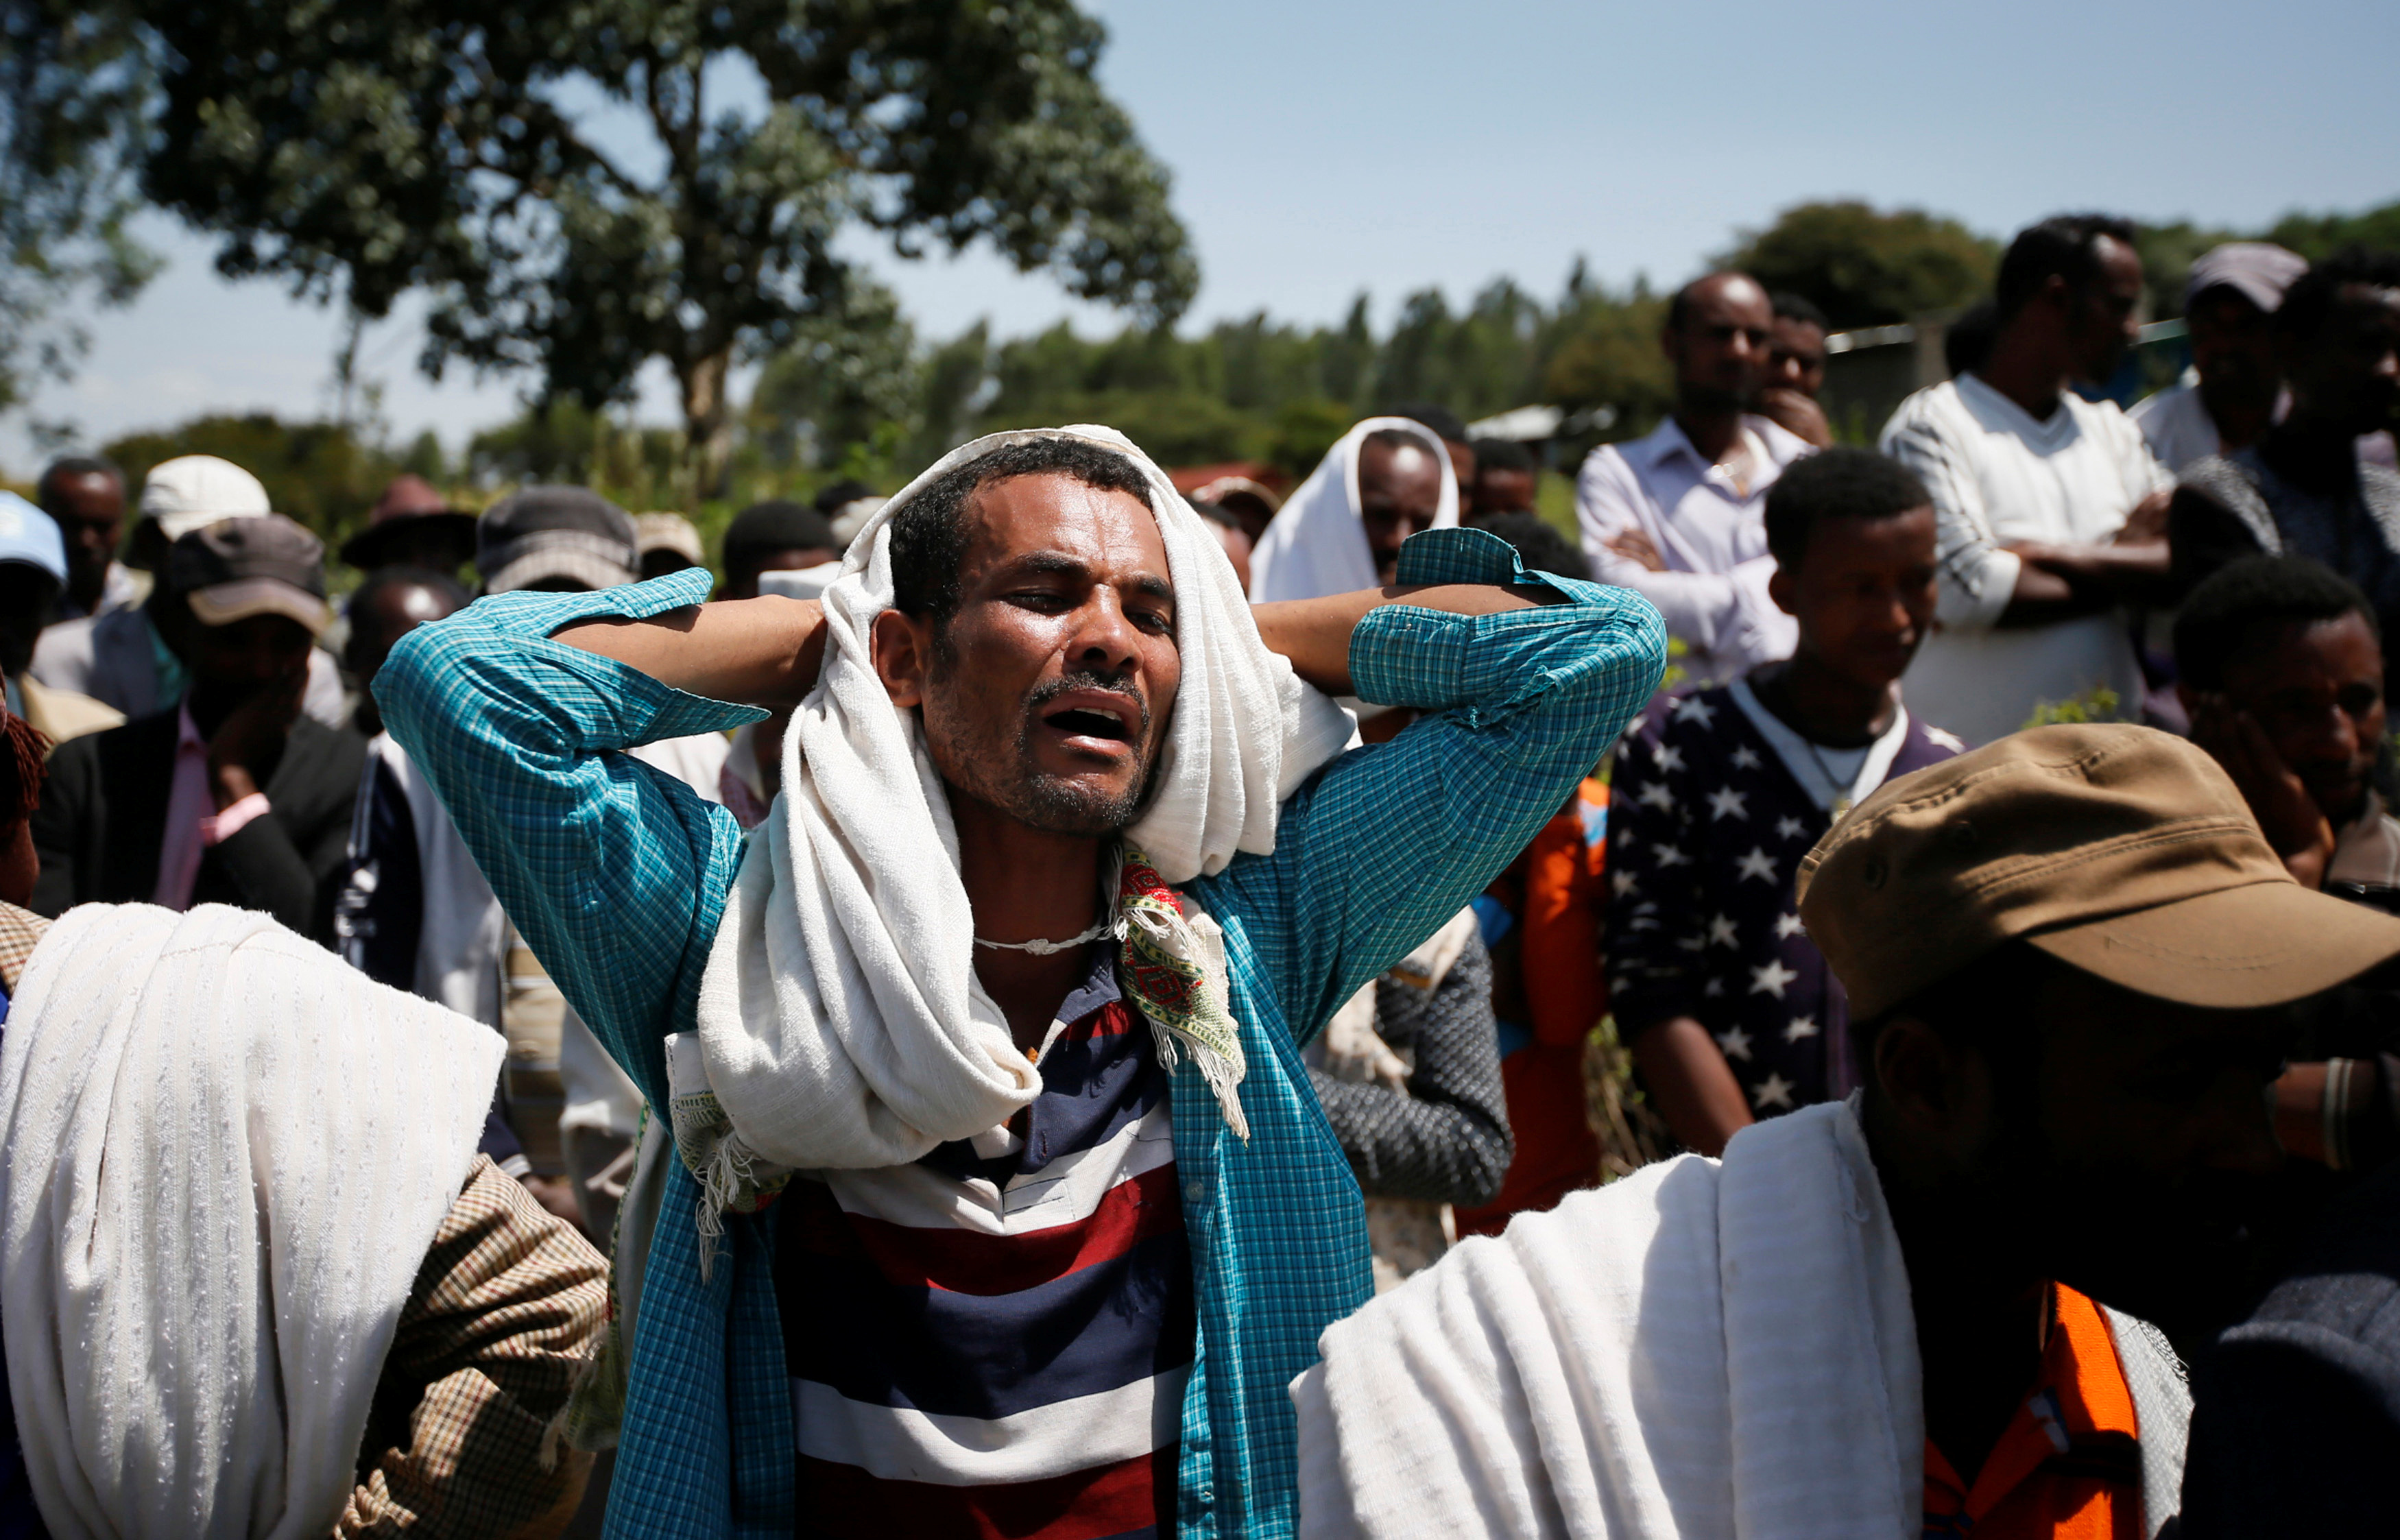 A man mourns during the funeral of Tesfu Tadese Biru, a construction engineer who died during a stampede after police fired warning shots at an anti-government protest in Bishoftu during Irreecha in Denkaka Kebele